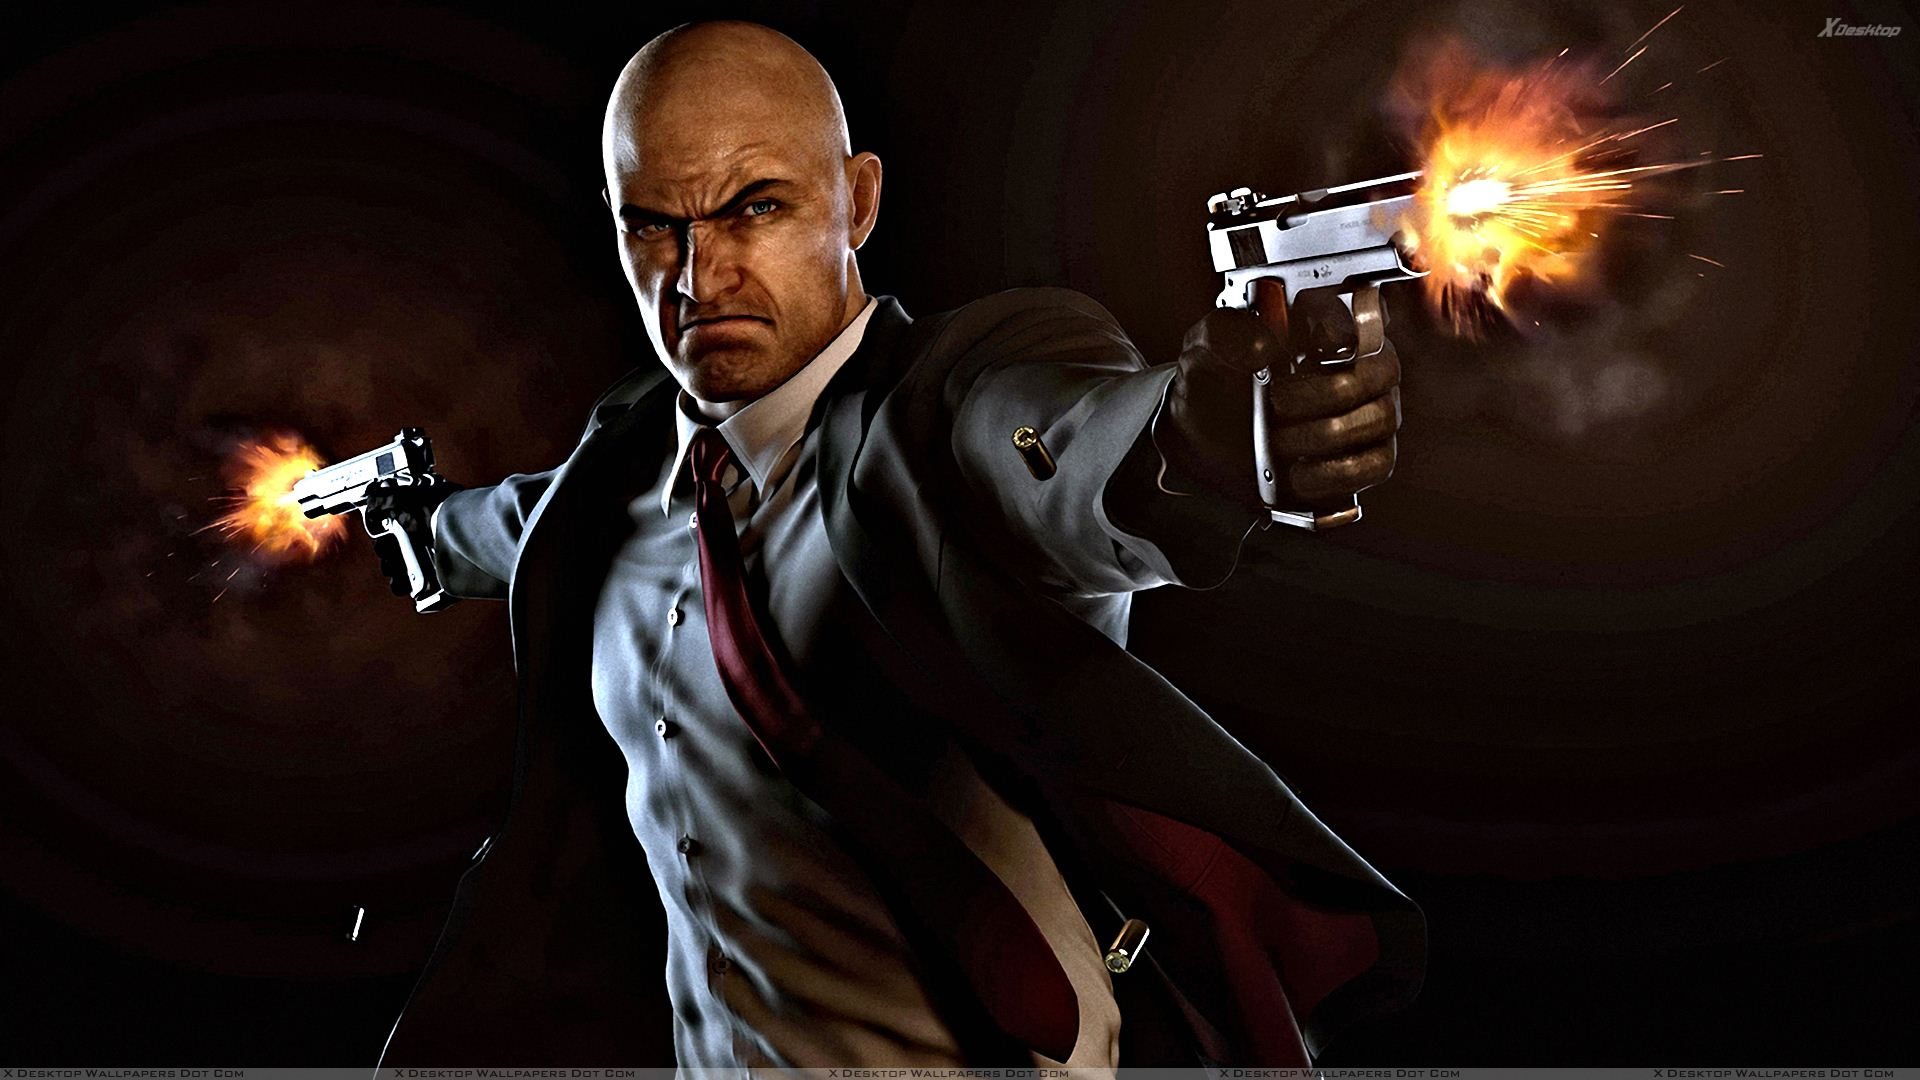 Hitman Absolution - Firing With Both Guns